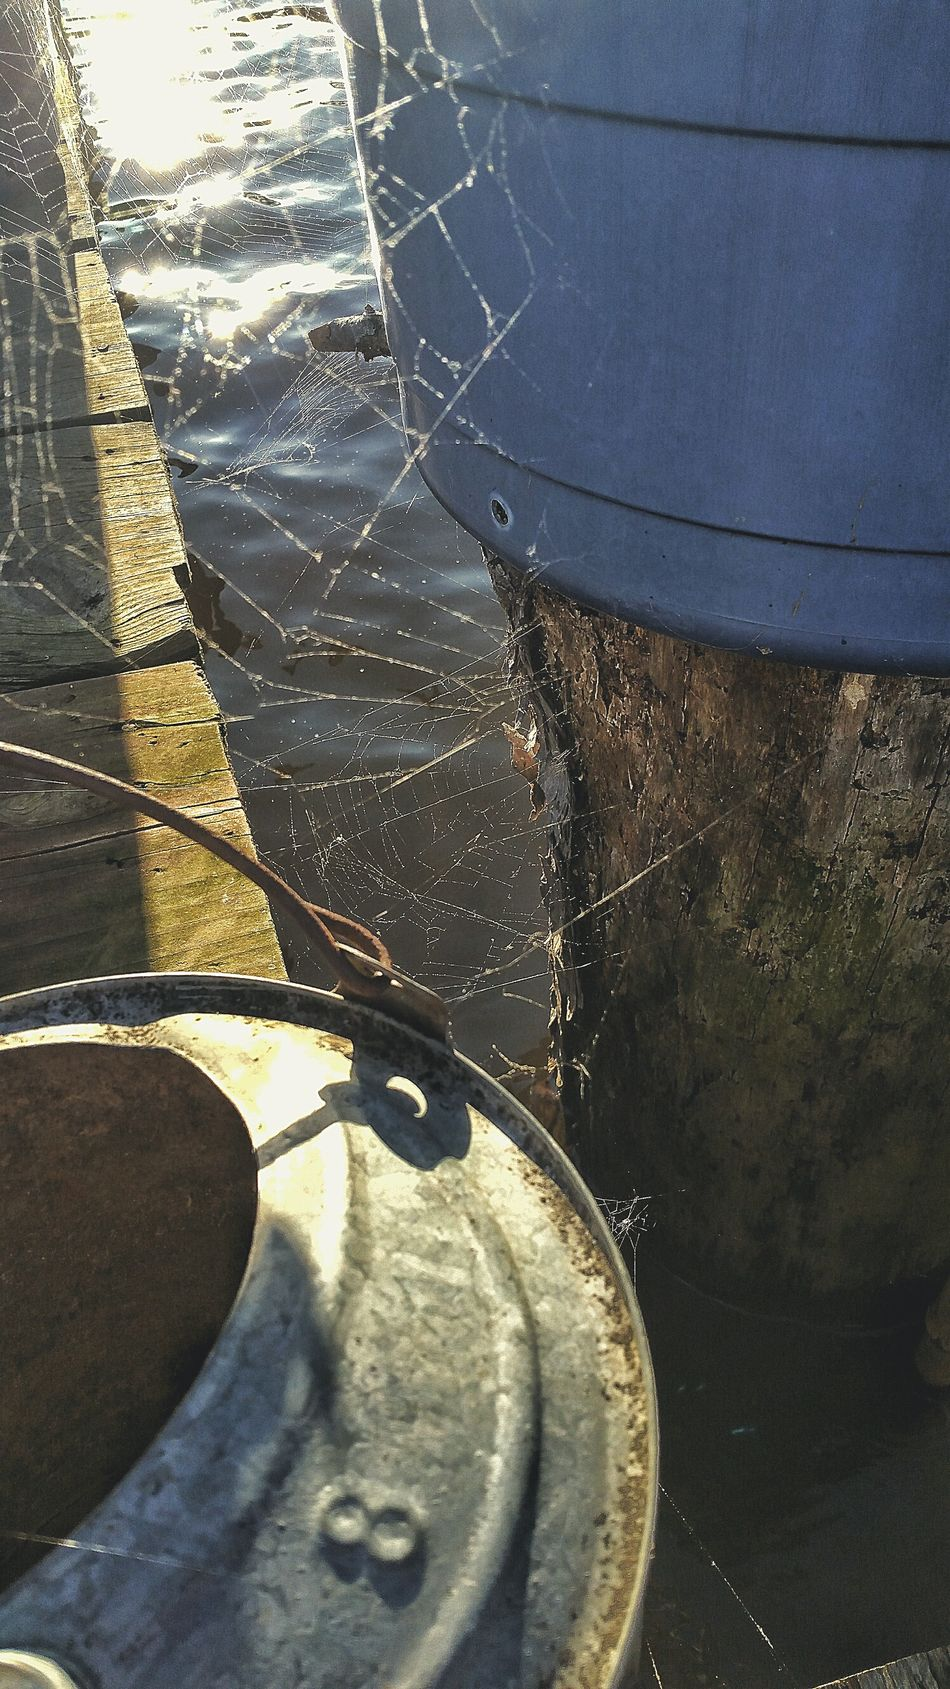 Reflection Water Close-up Day Low Section Outdoors Web Spider Web Waterer Water Dock Boat Dock Deck Wooden Dock Fishing Web Over Water Spider Hunting